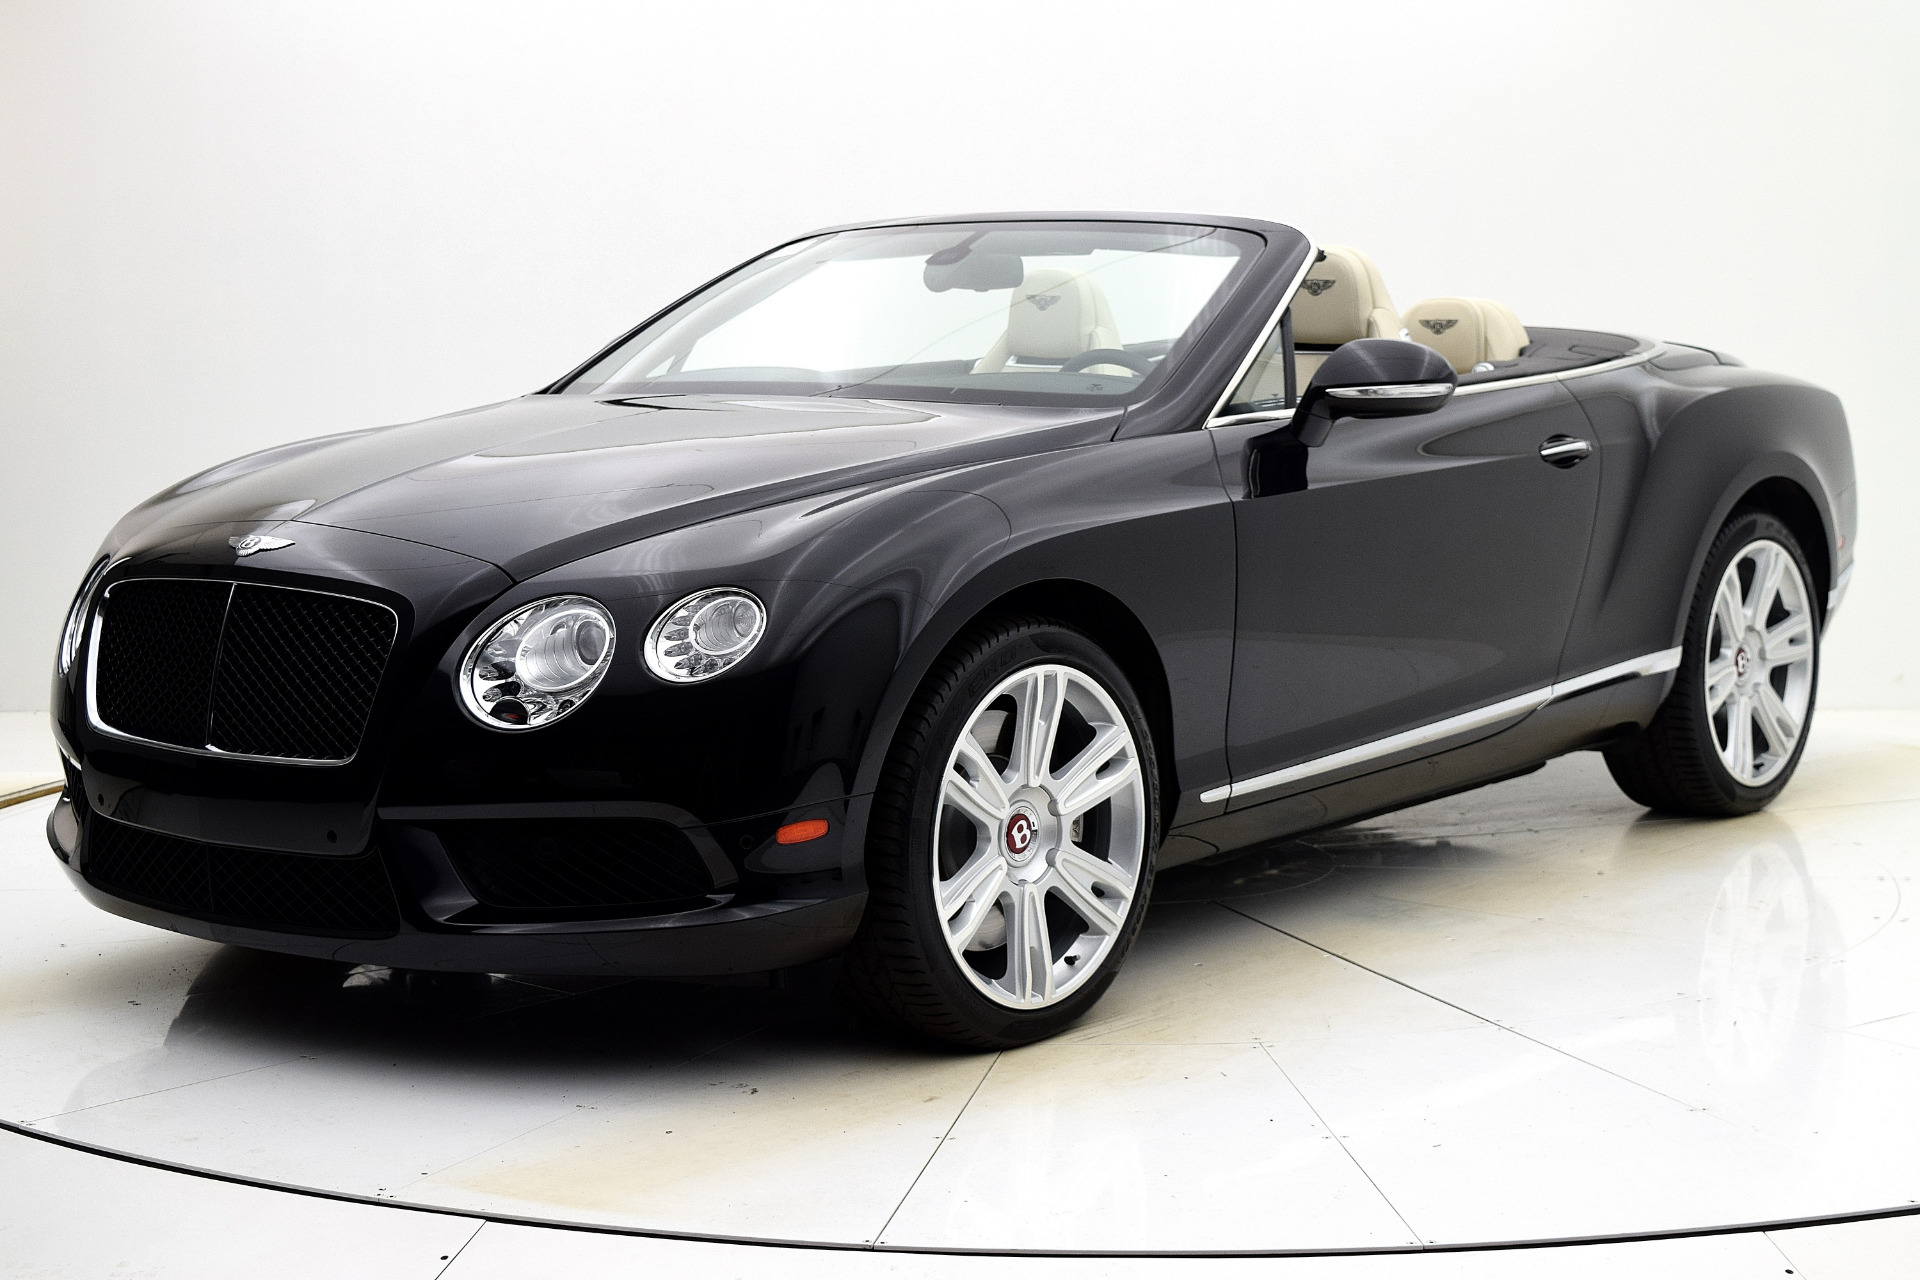 Used 2014 Bentley Continental GT V8 Convertible for sale Sold at Bentley Palmyra N.J. in Palmyra NJ 08065 2